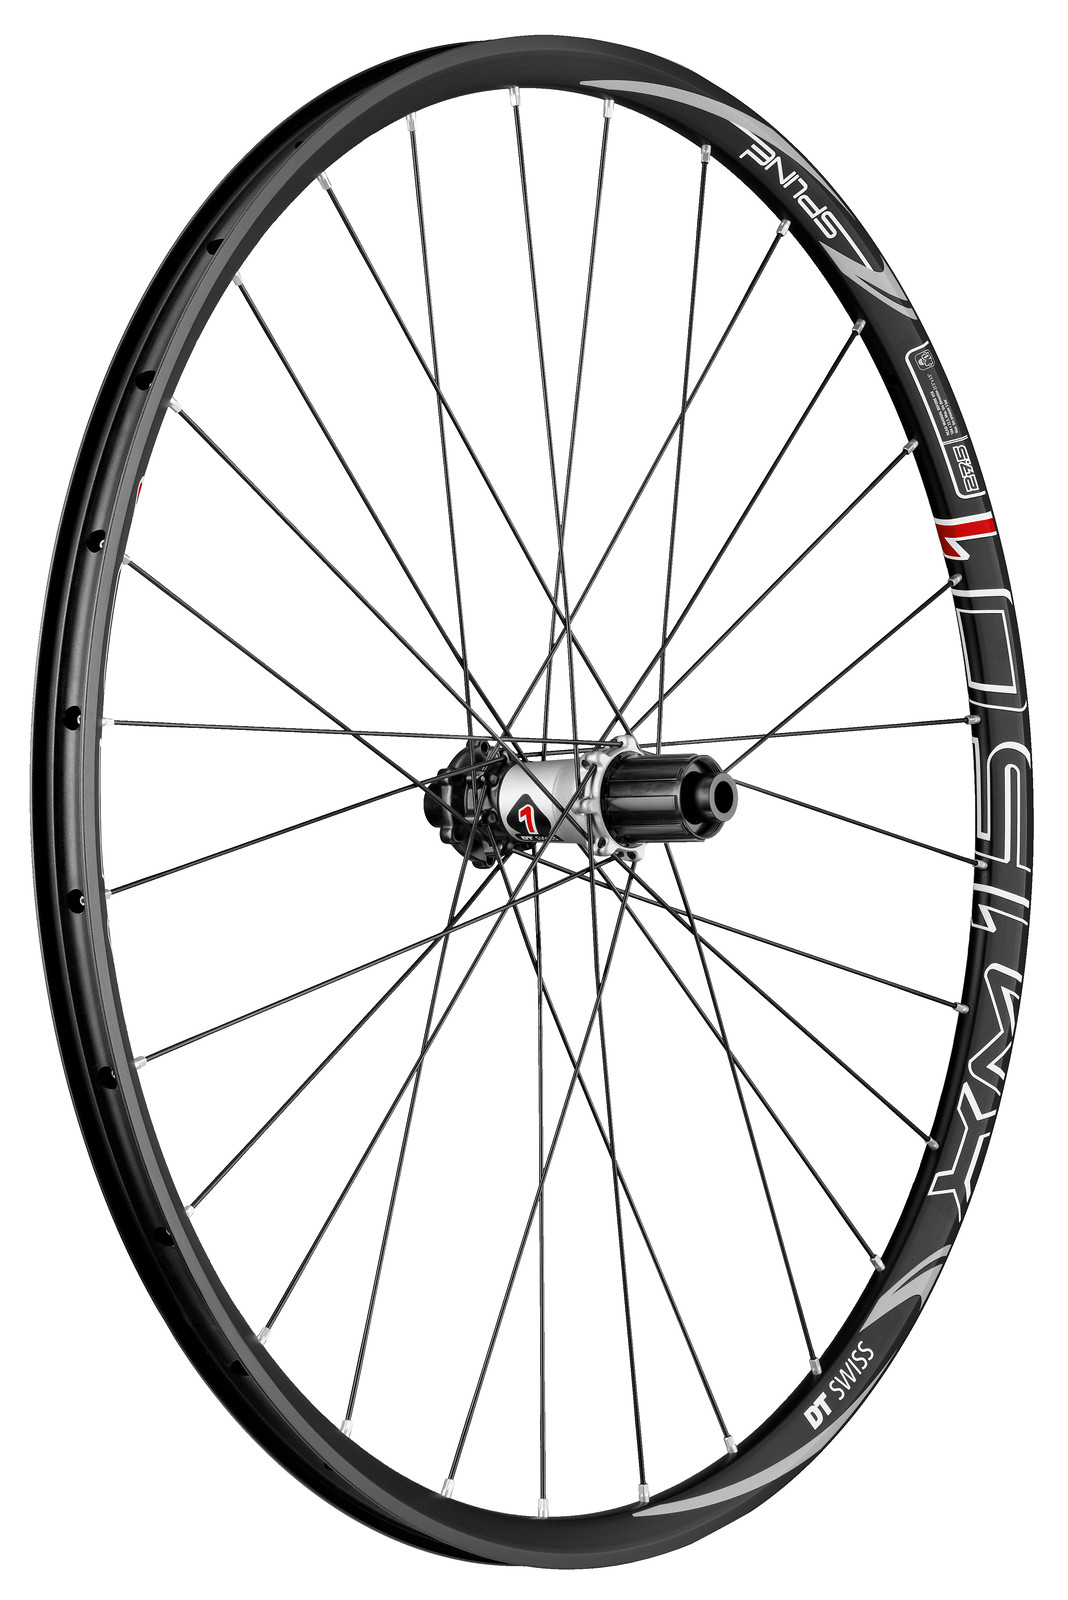 DT Swiss XM1501 Spline ONE 27.5 Complete Wheel PHO_XM_1501_SPLINE_ONE_27.5_BLACK_TA_12_142_RW_RGB